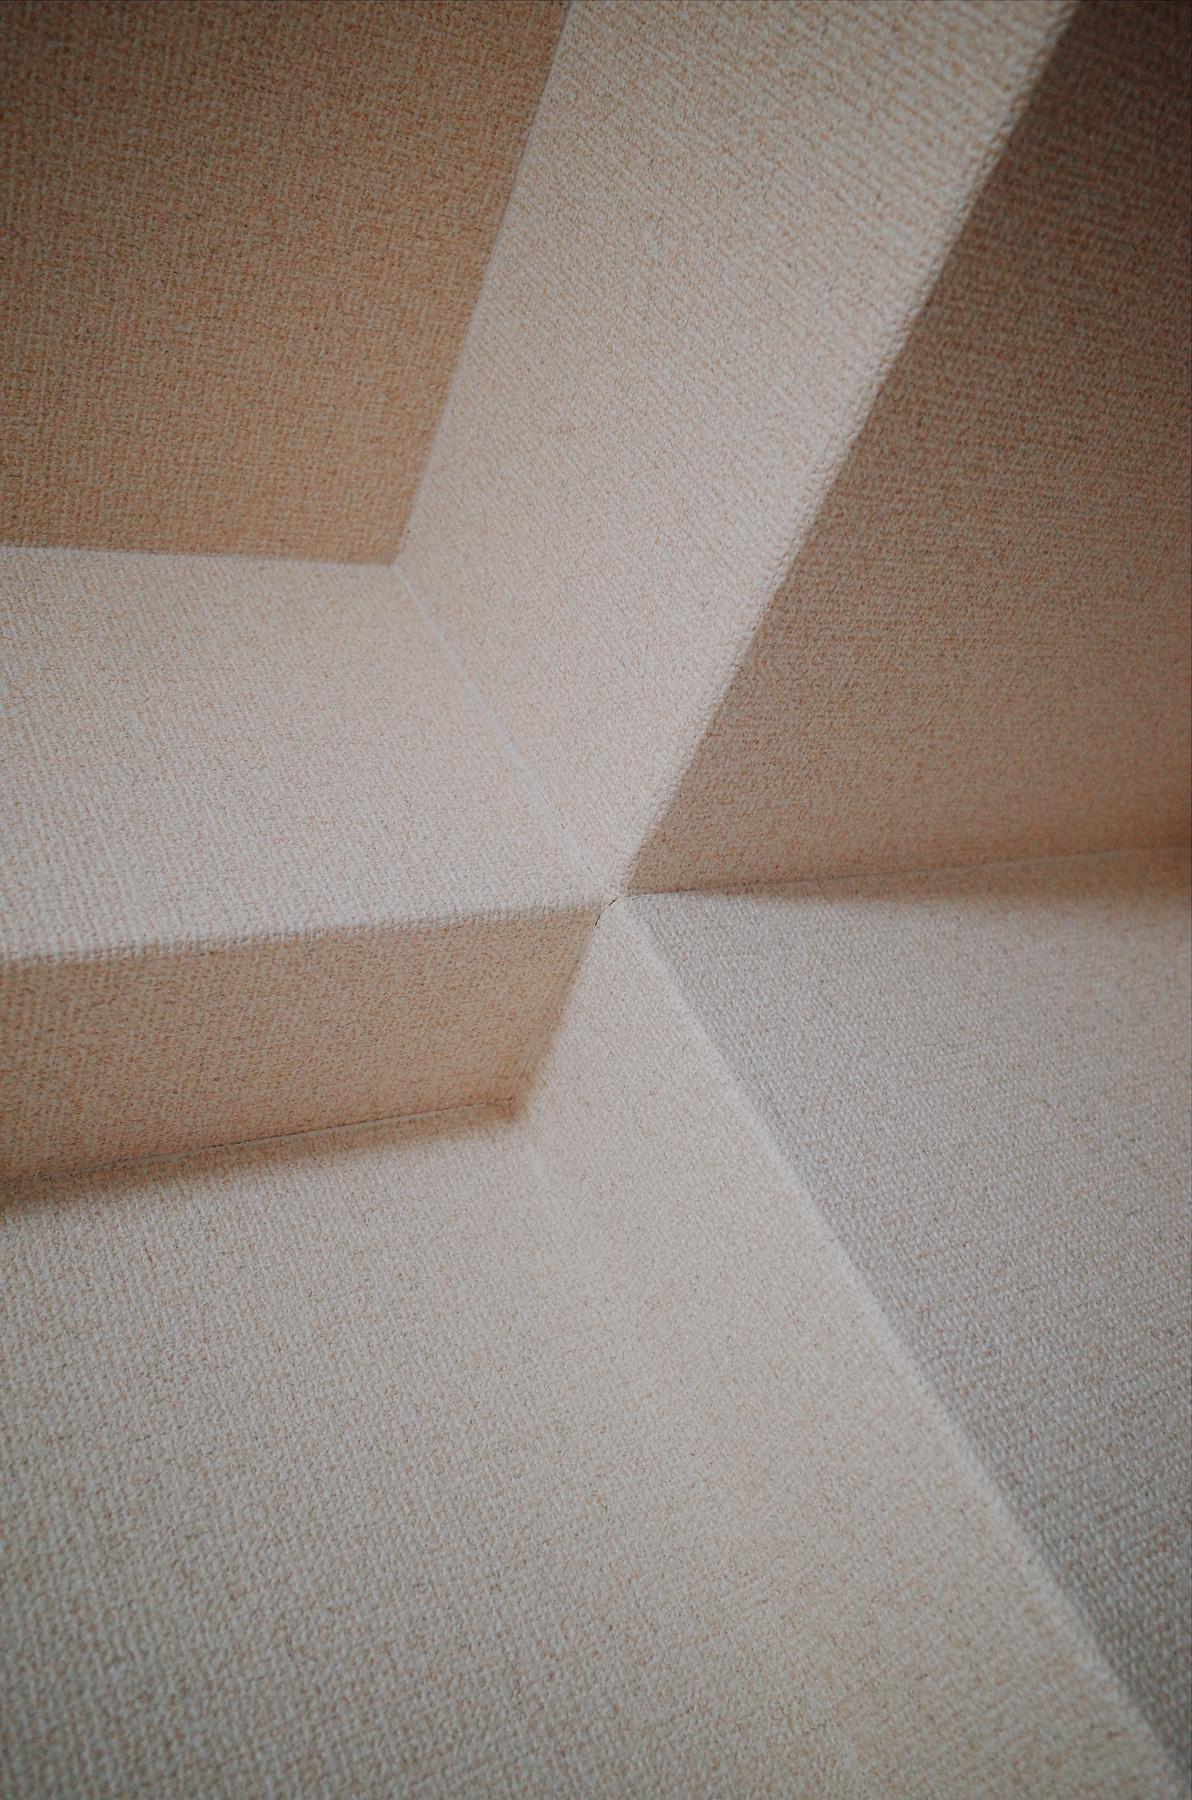 composition look up perspective-0612482.jpg